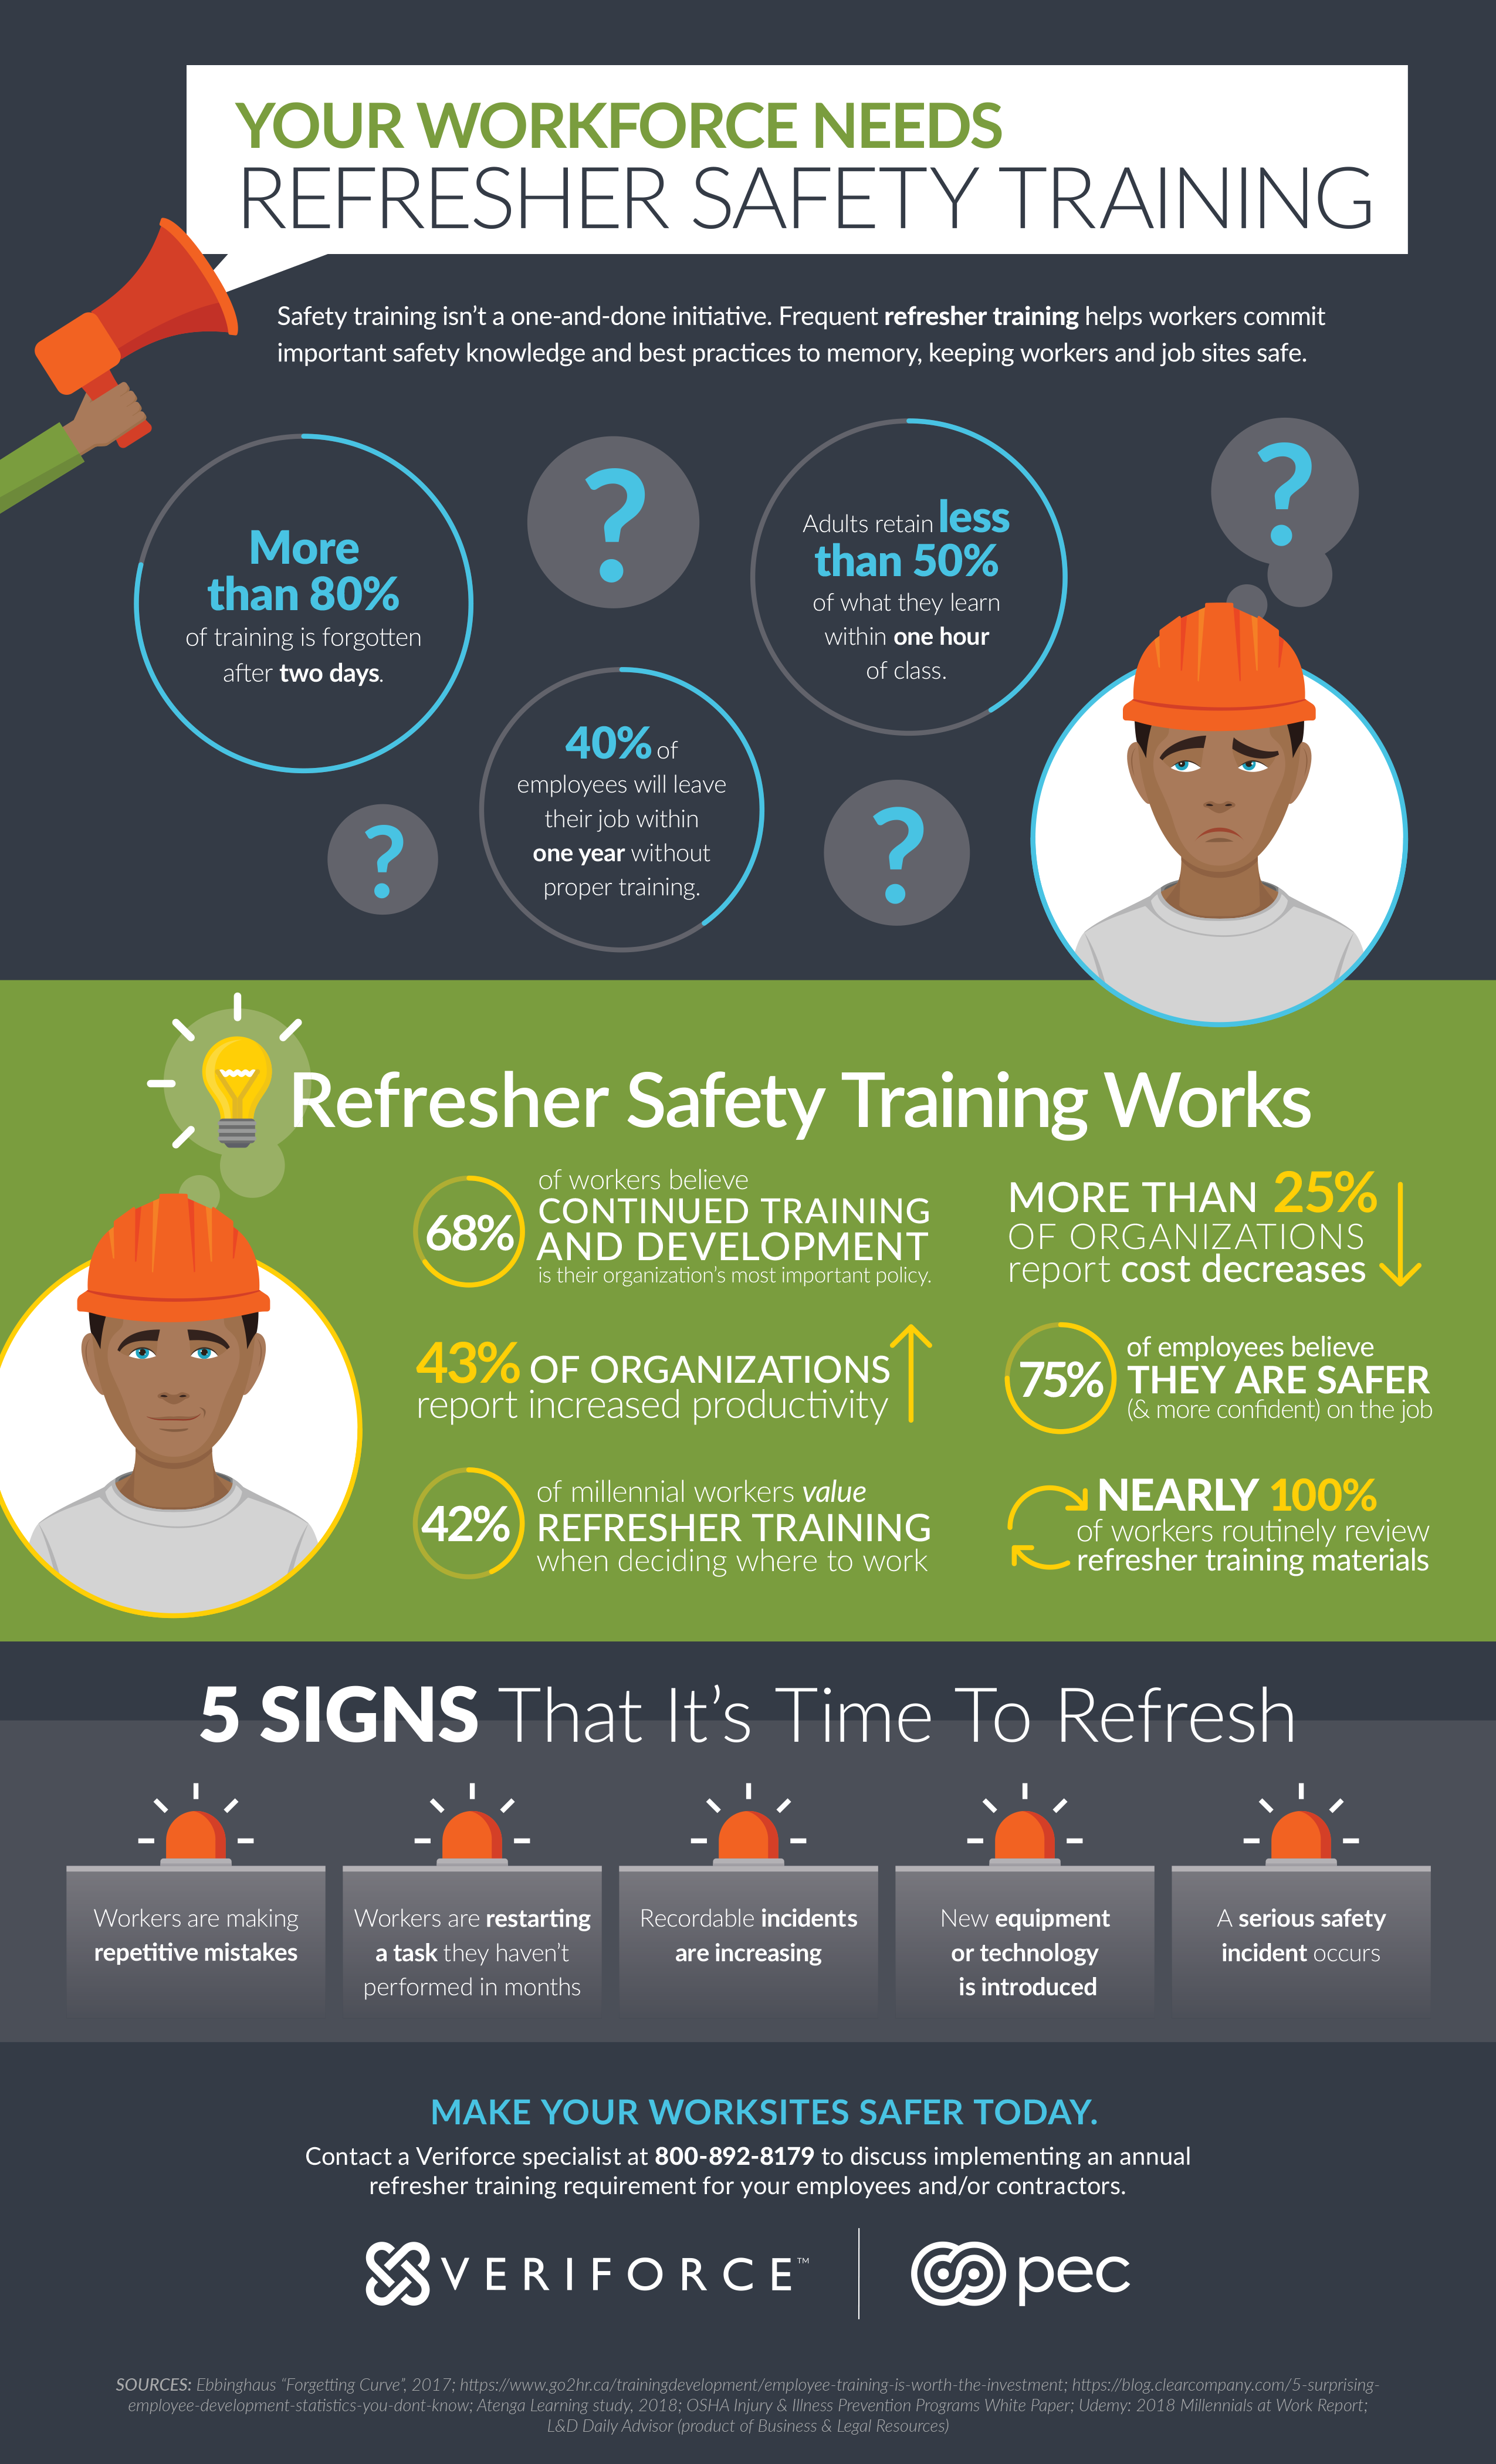 Veriforce refresher training infographic